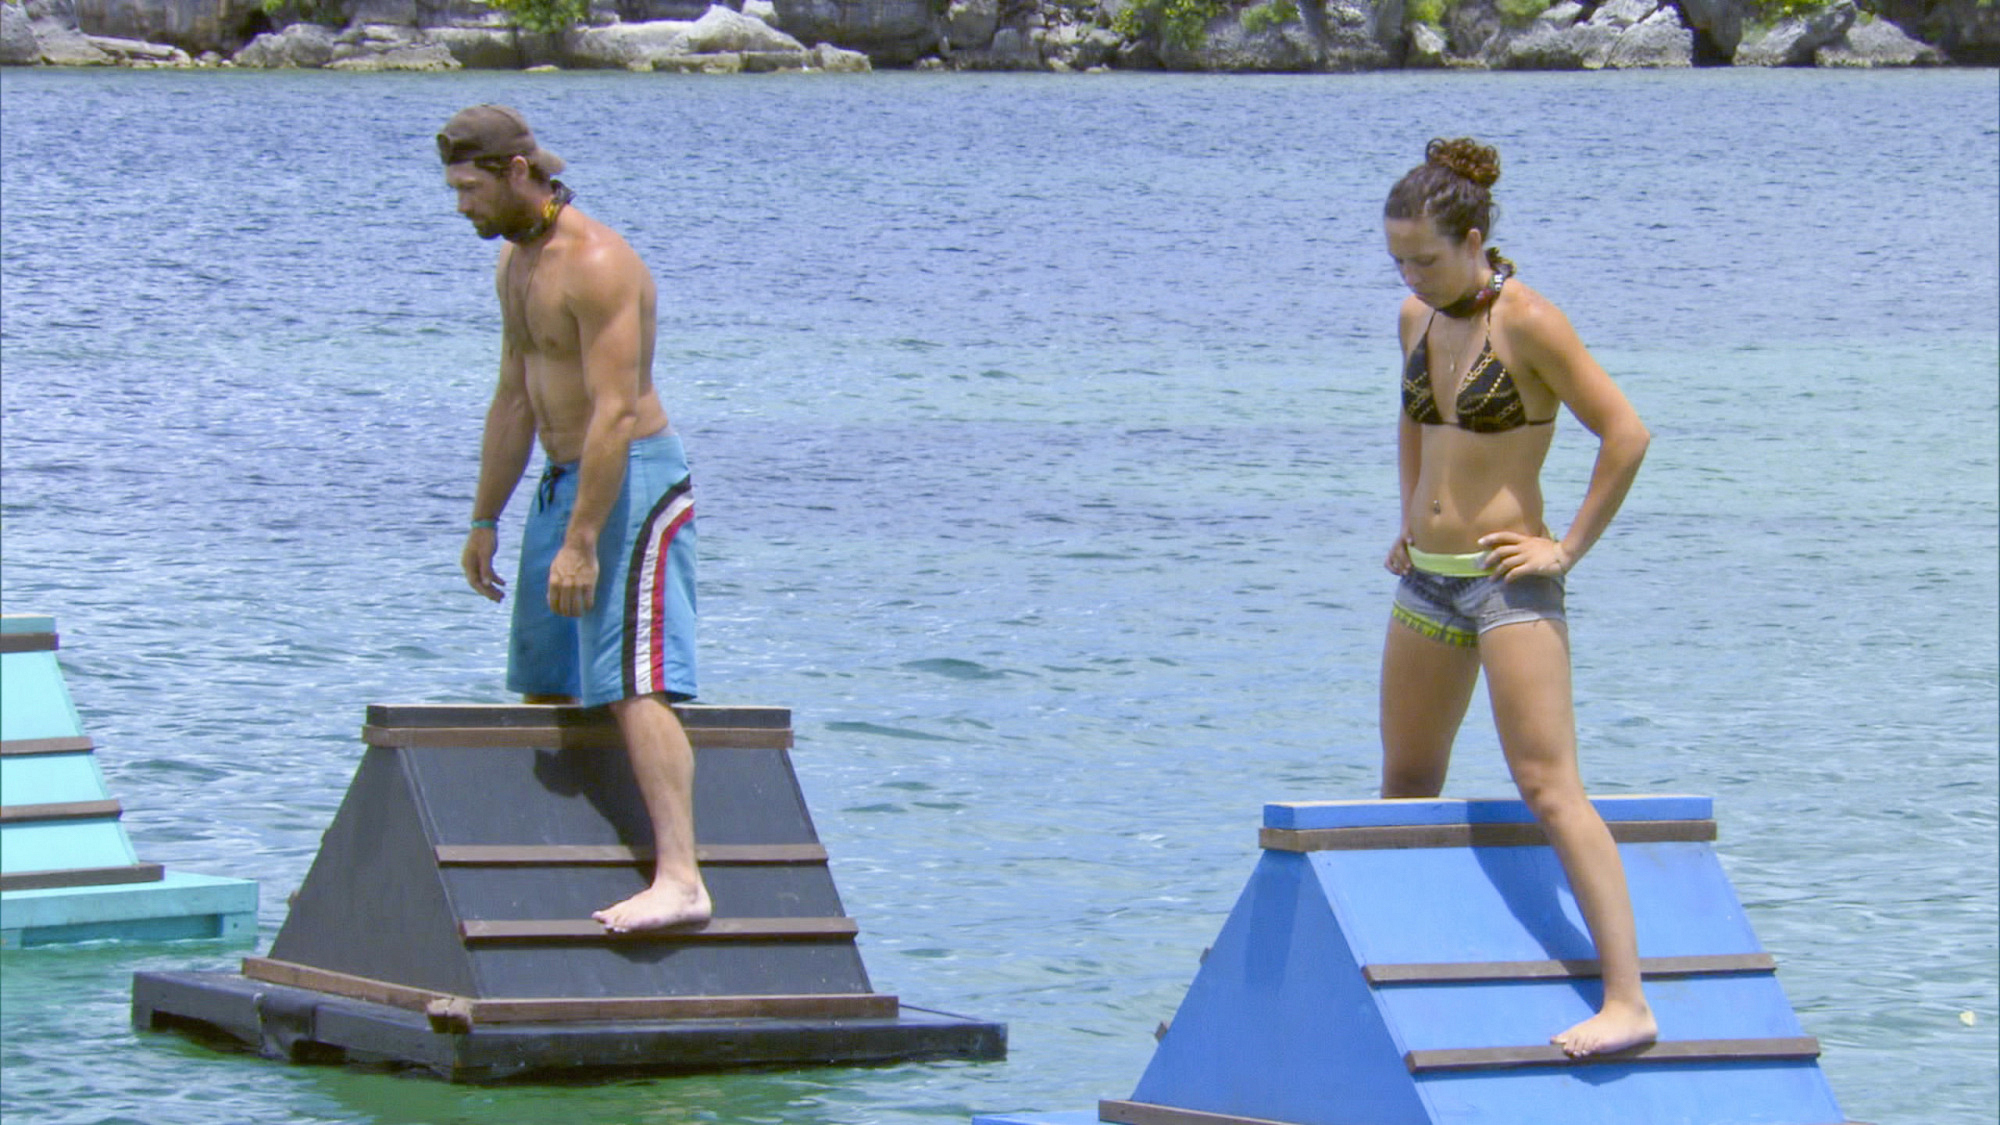 LJ and Sarah compete in Season 28 Episode 6